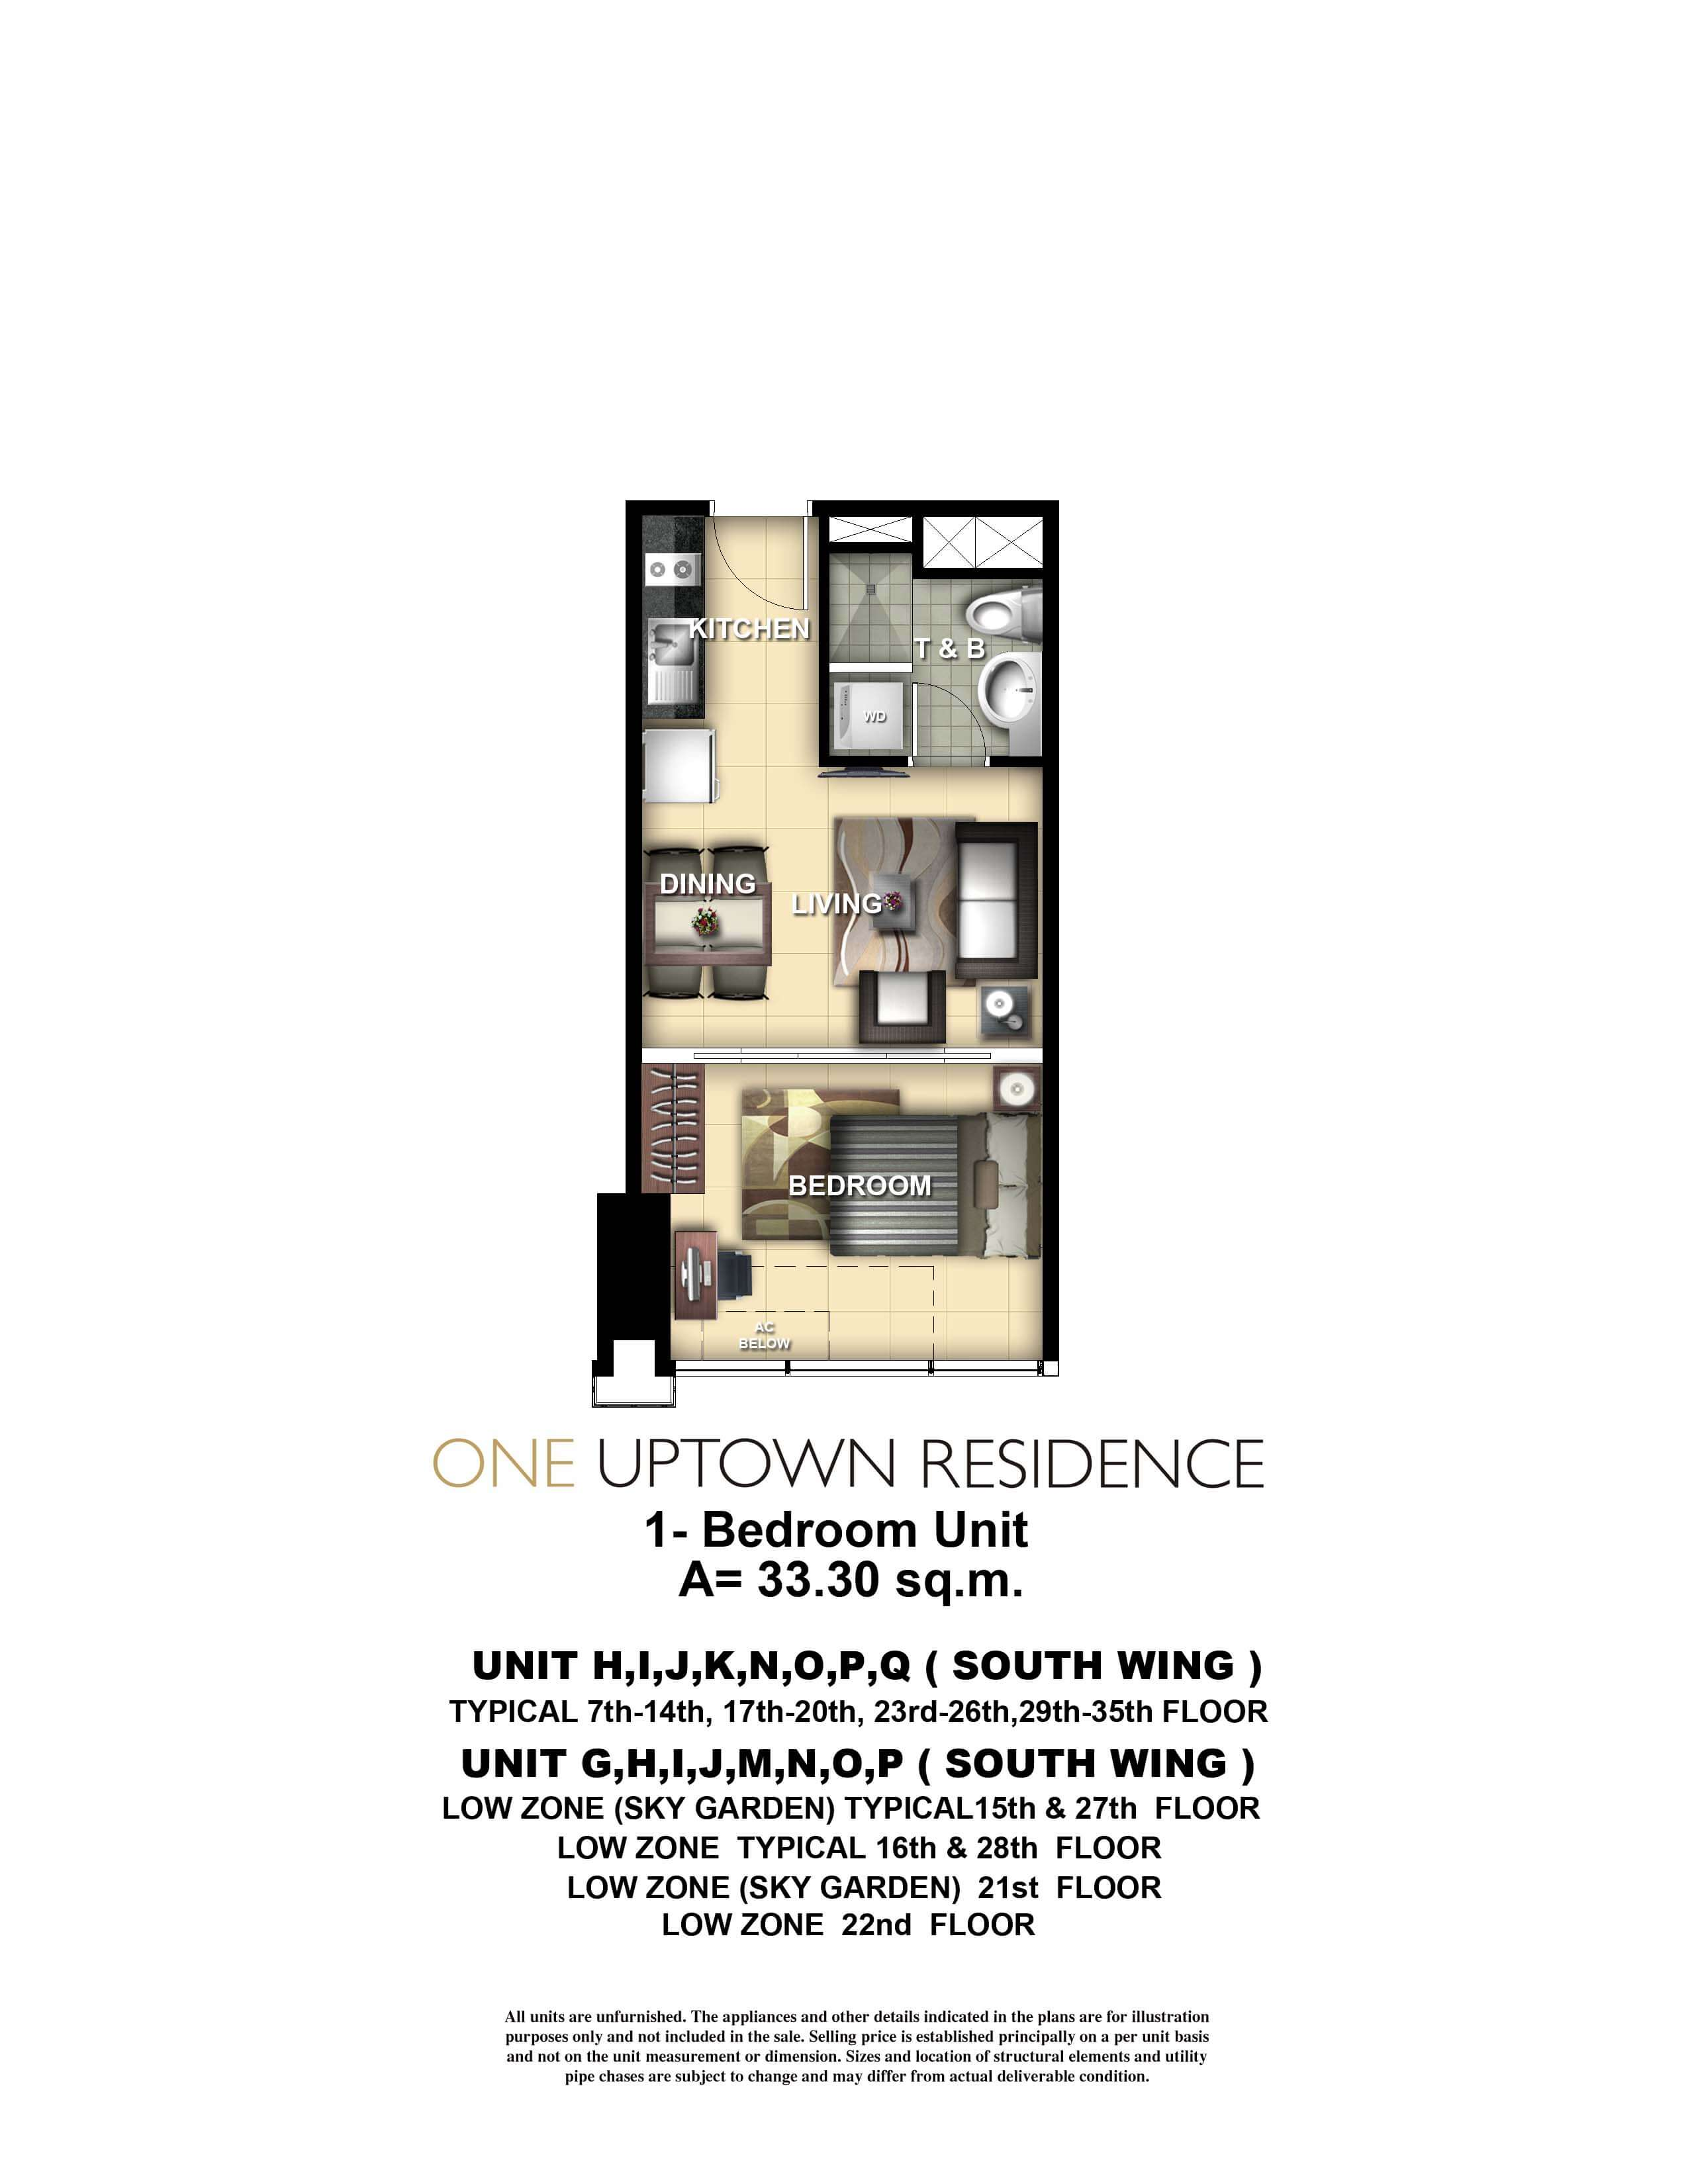 One Uptown Residence Unit Layout 1BR (33.3sqm)